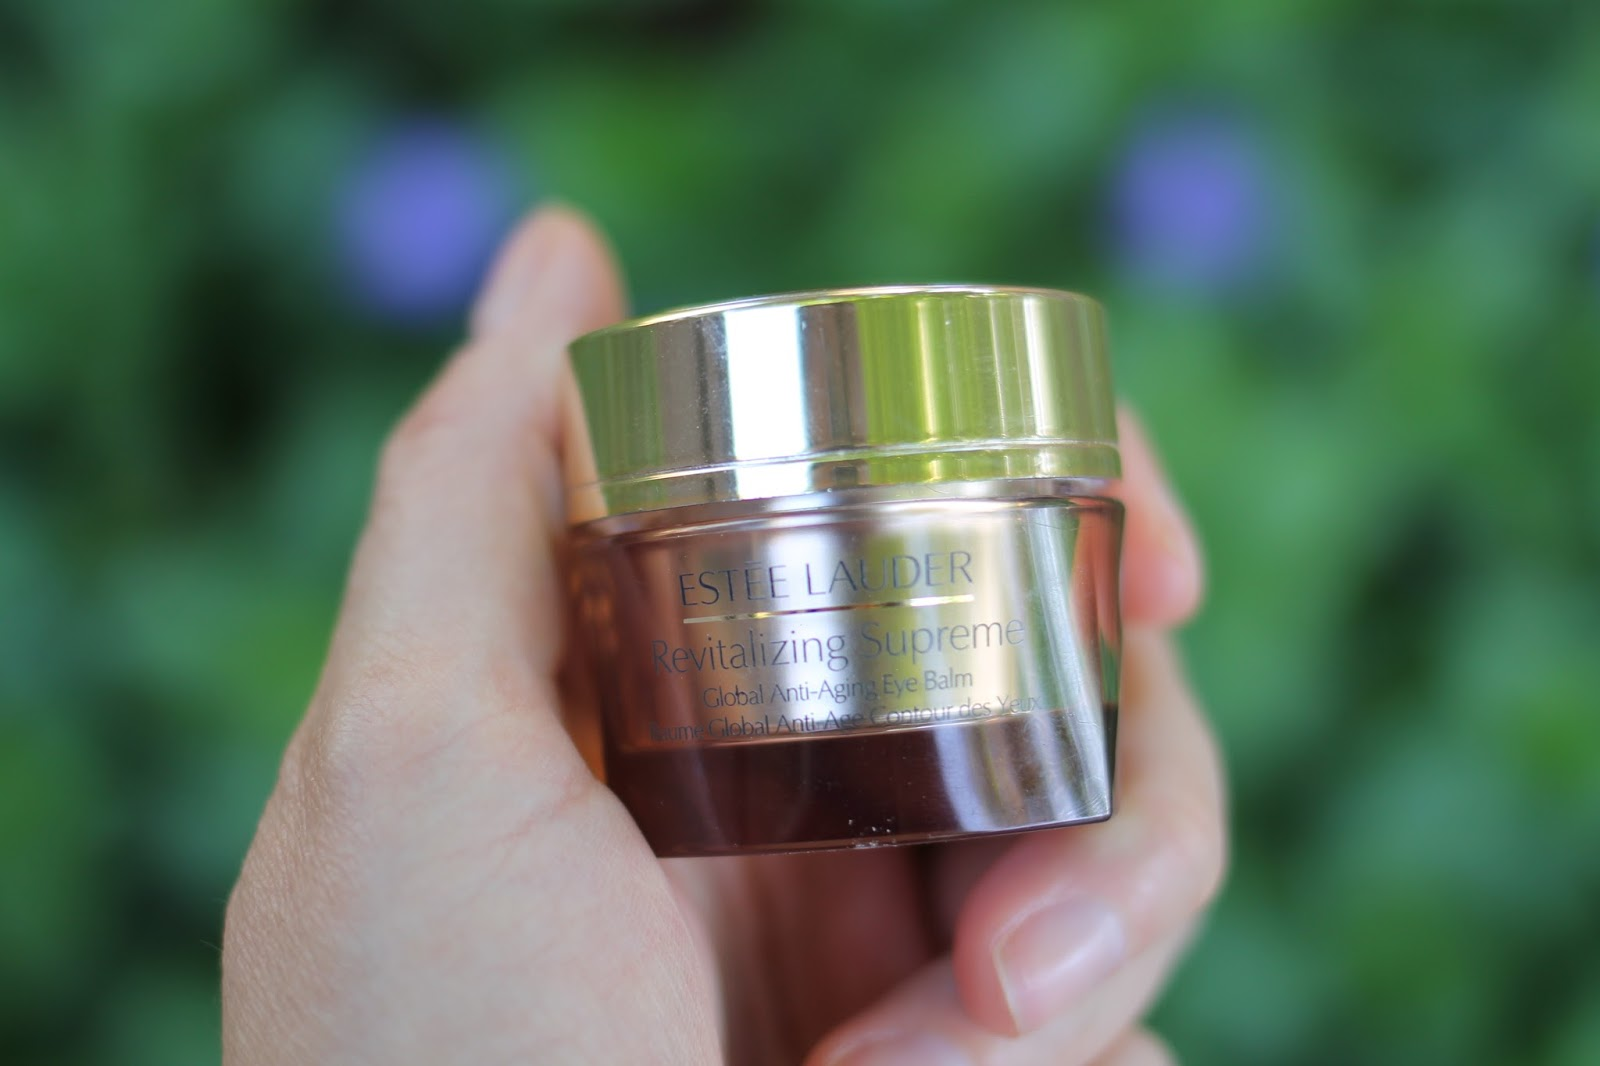 estee Lauder anti aging eye balm review